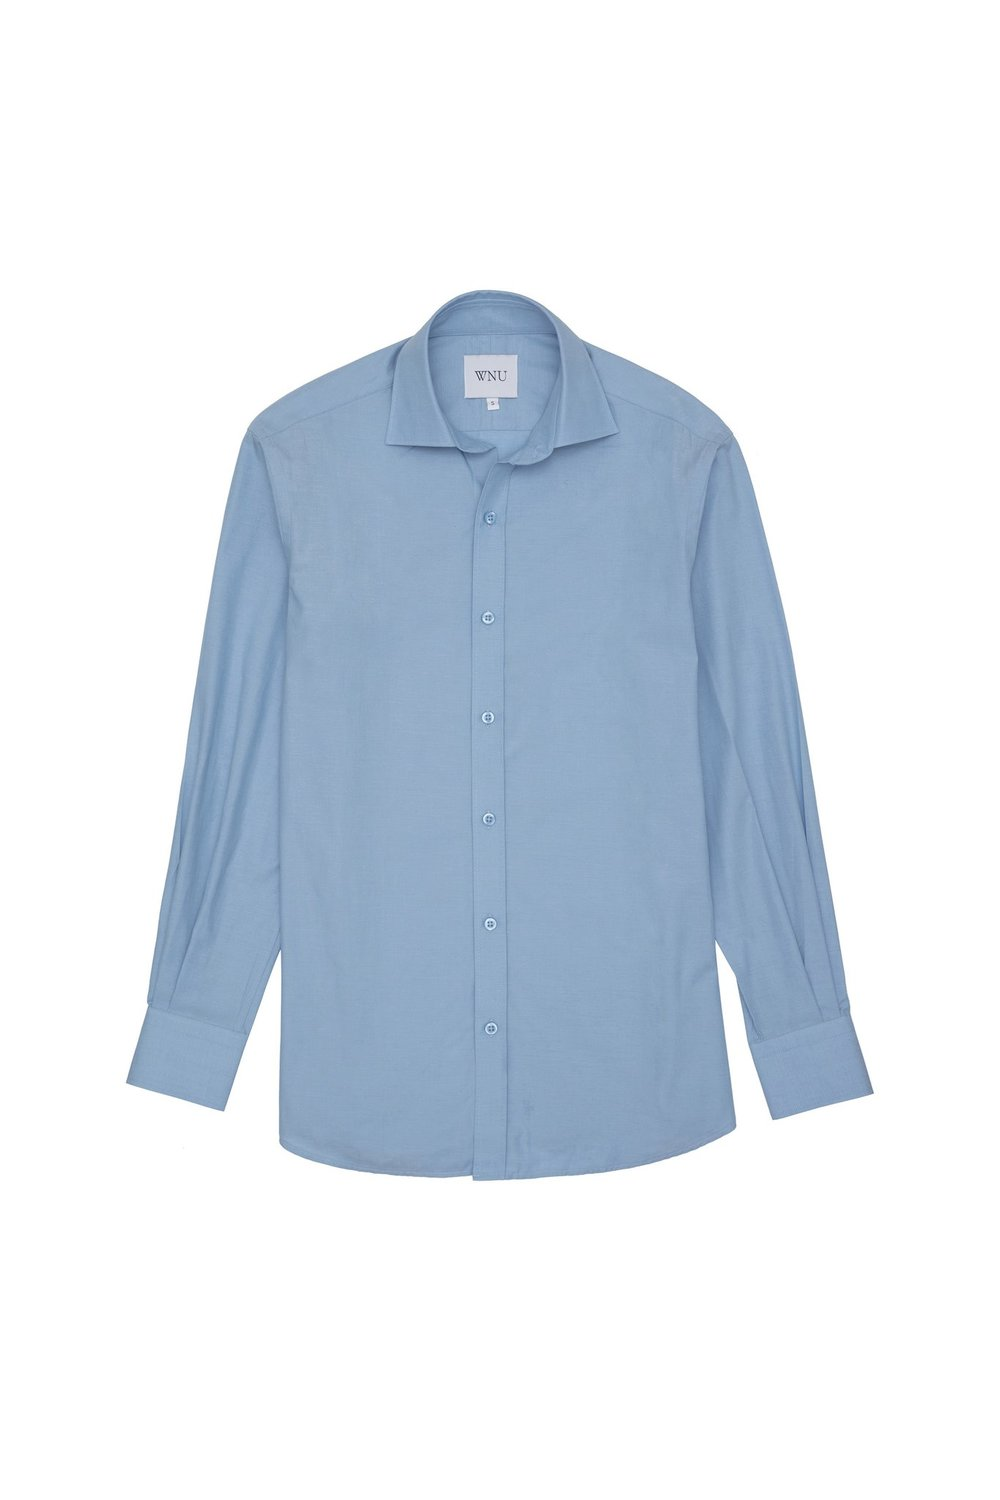 8. Blue Shirt, £80 by With Nothing Underneath